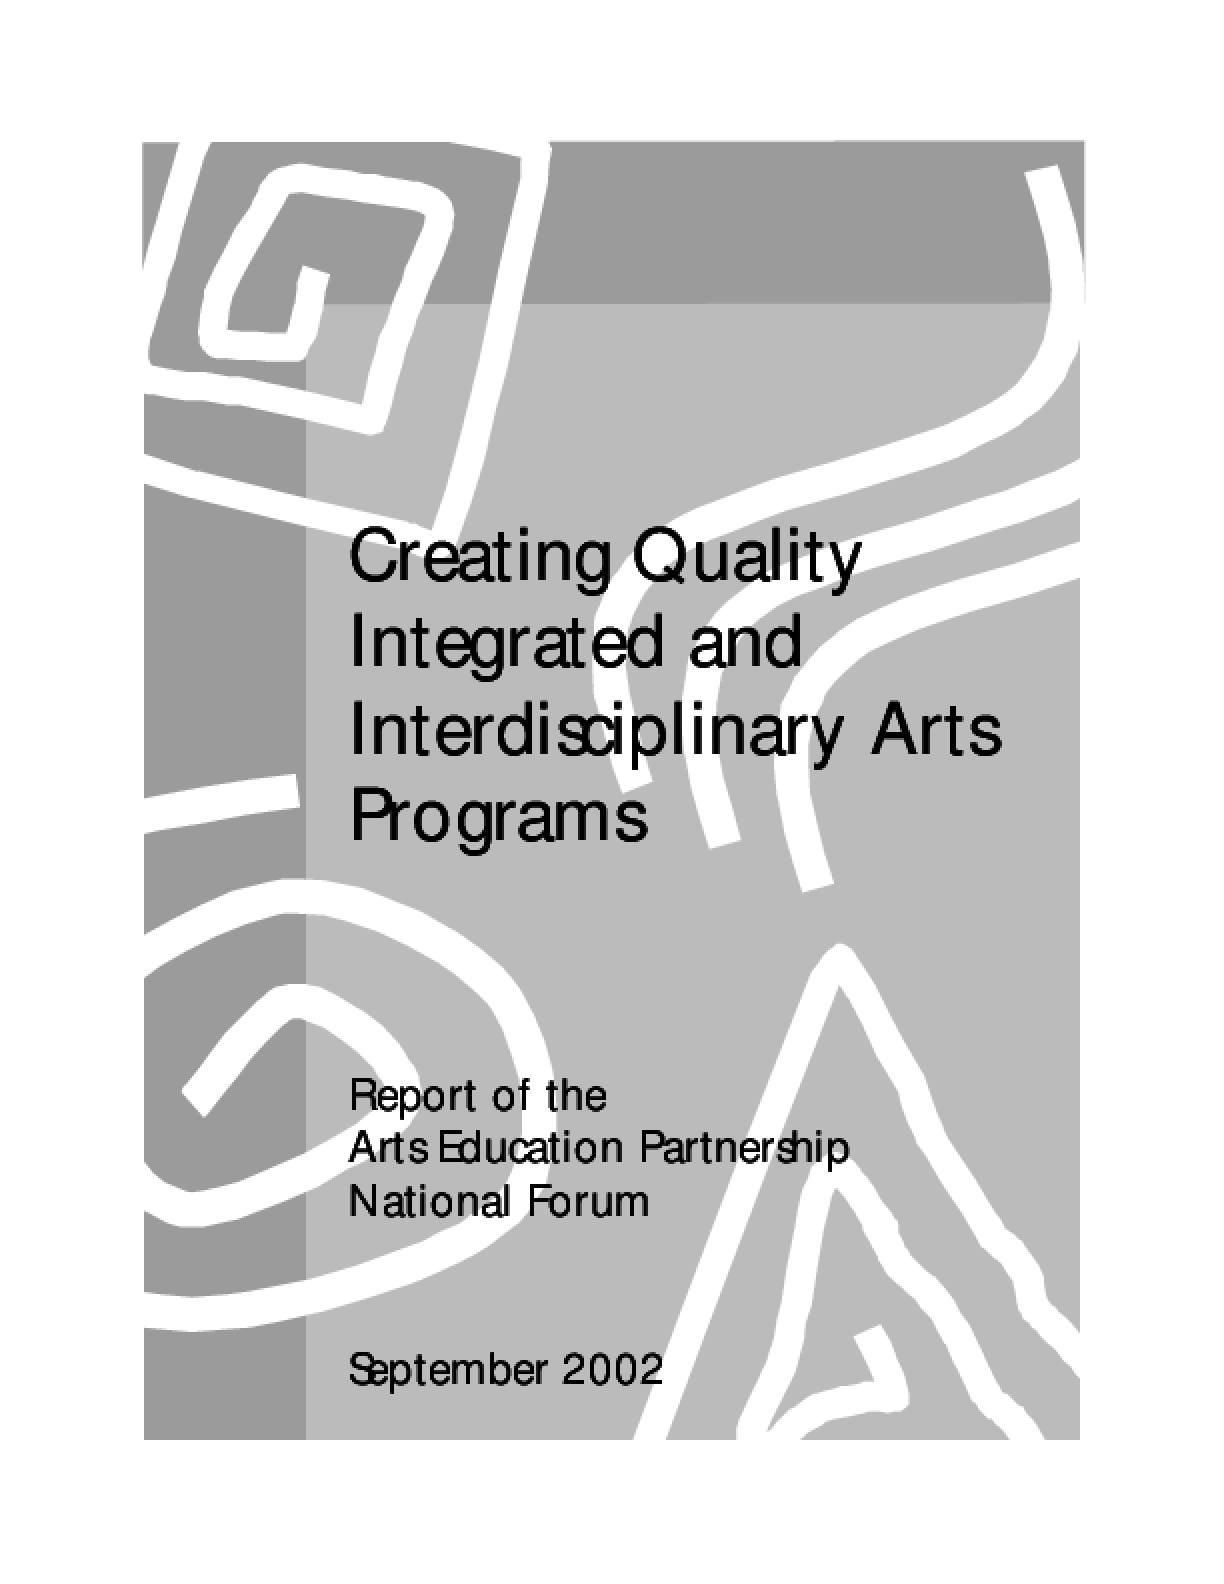 Creating Quality Integrated and Interdisciplinary Arts Programs